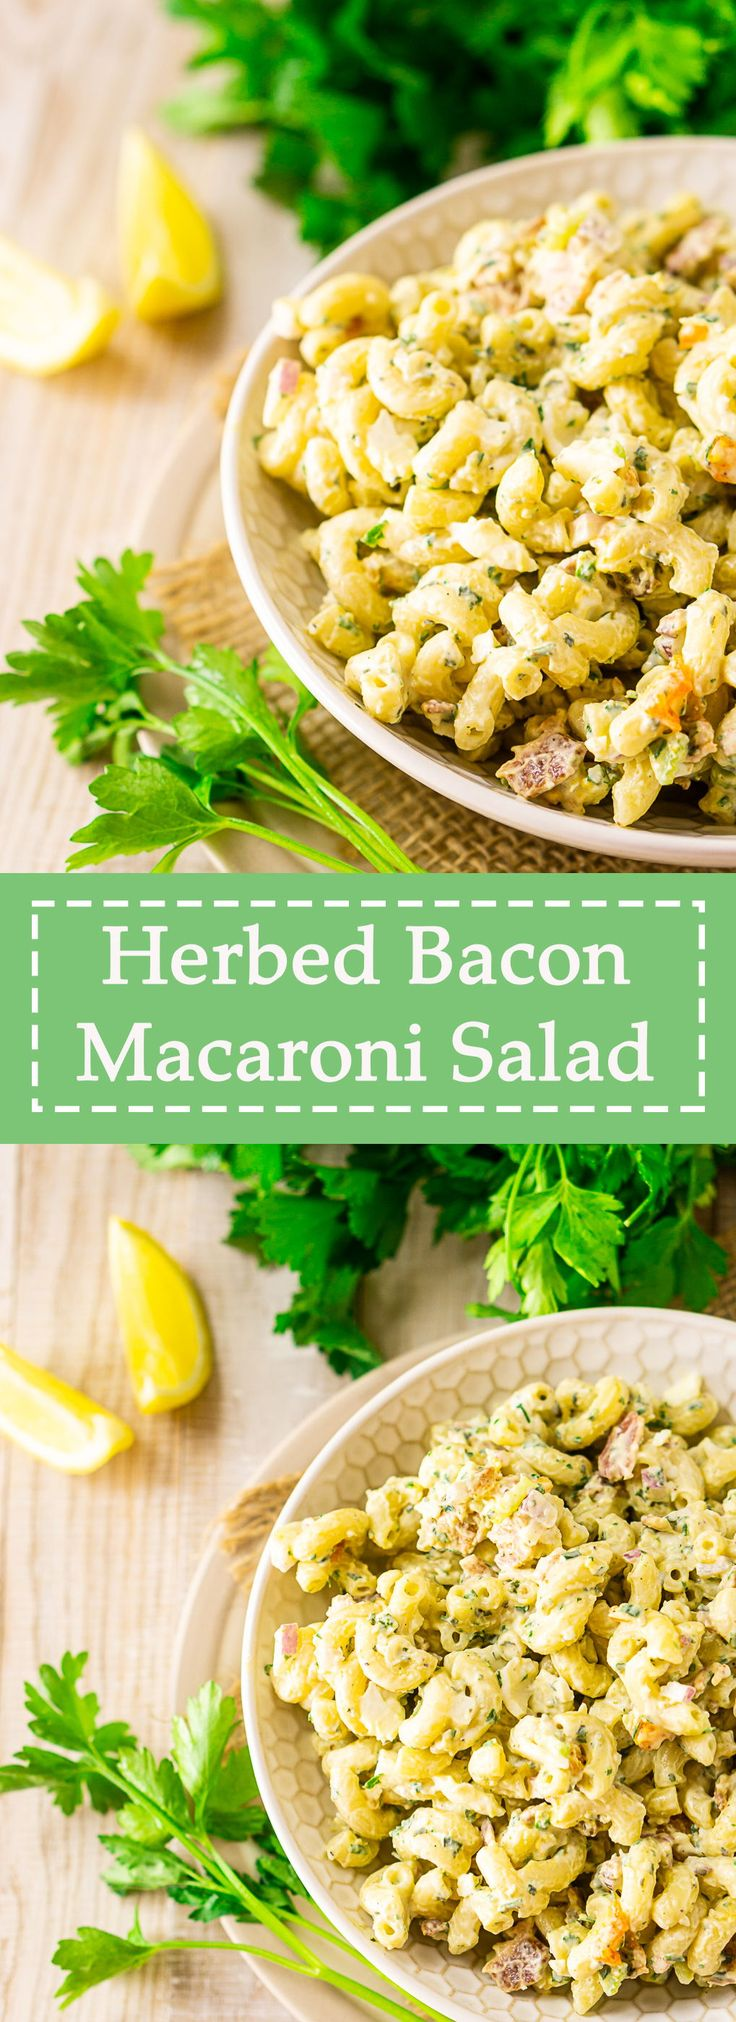 Looking for a twist on your classic macaroni salad? You'll love this herbed bacon macaroni salad! Featuring a homemade,…